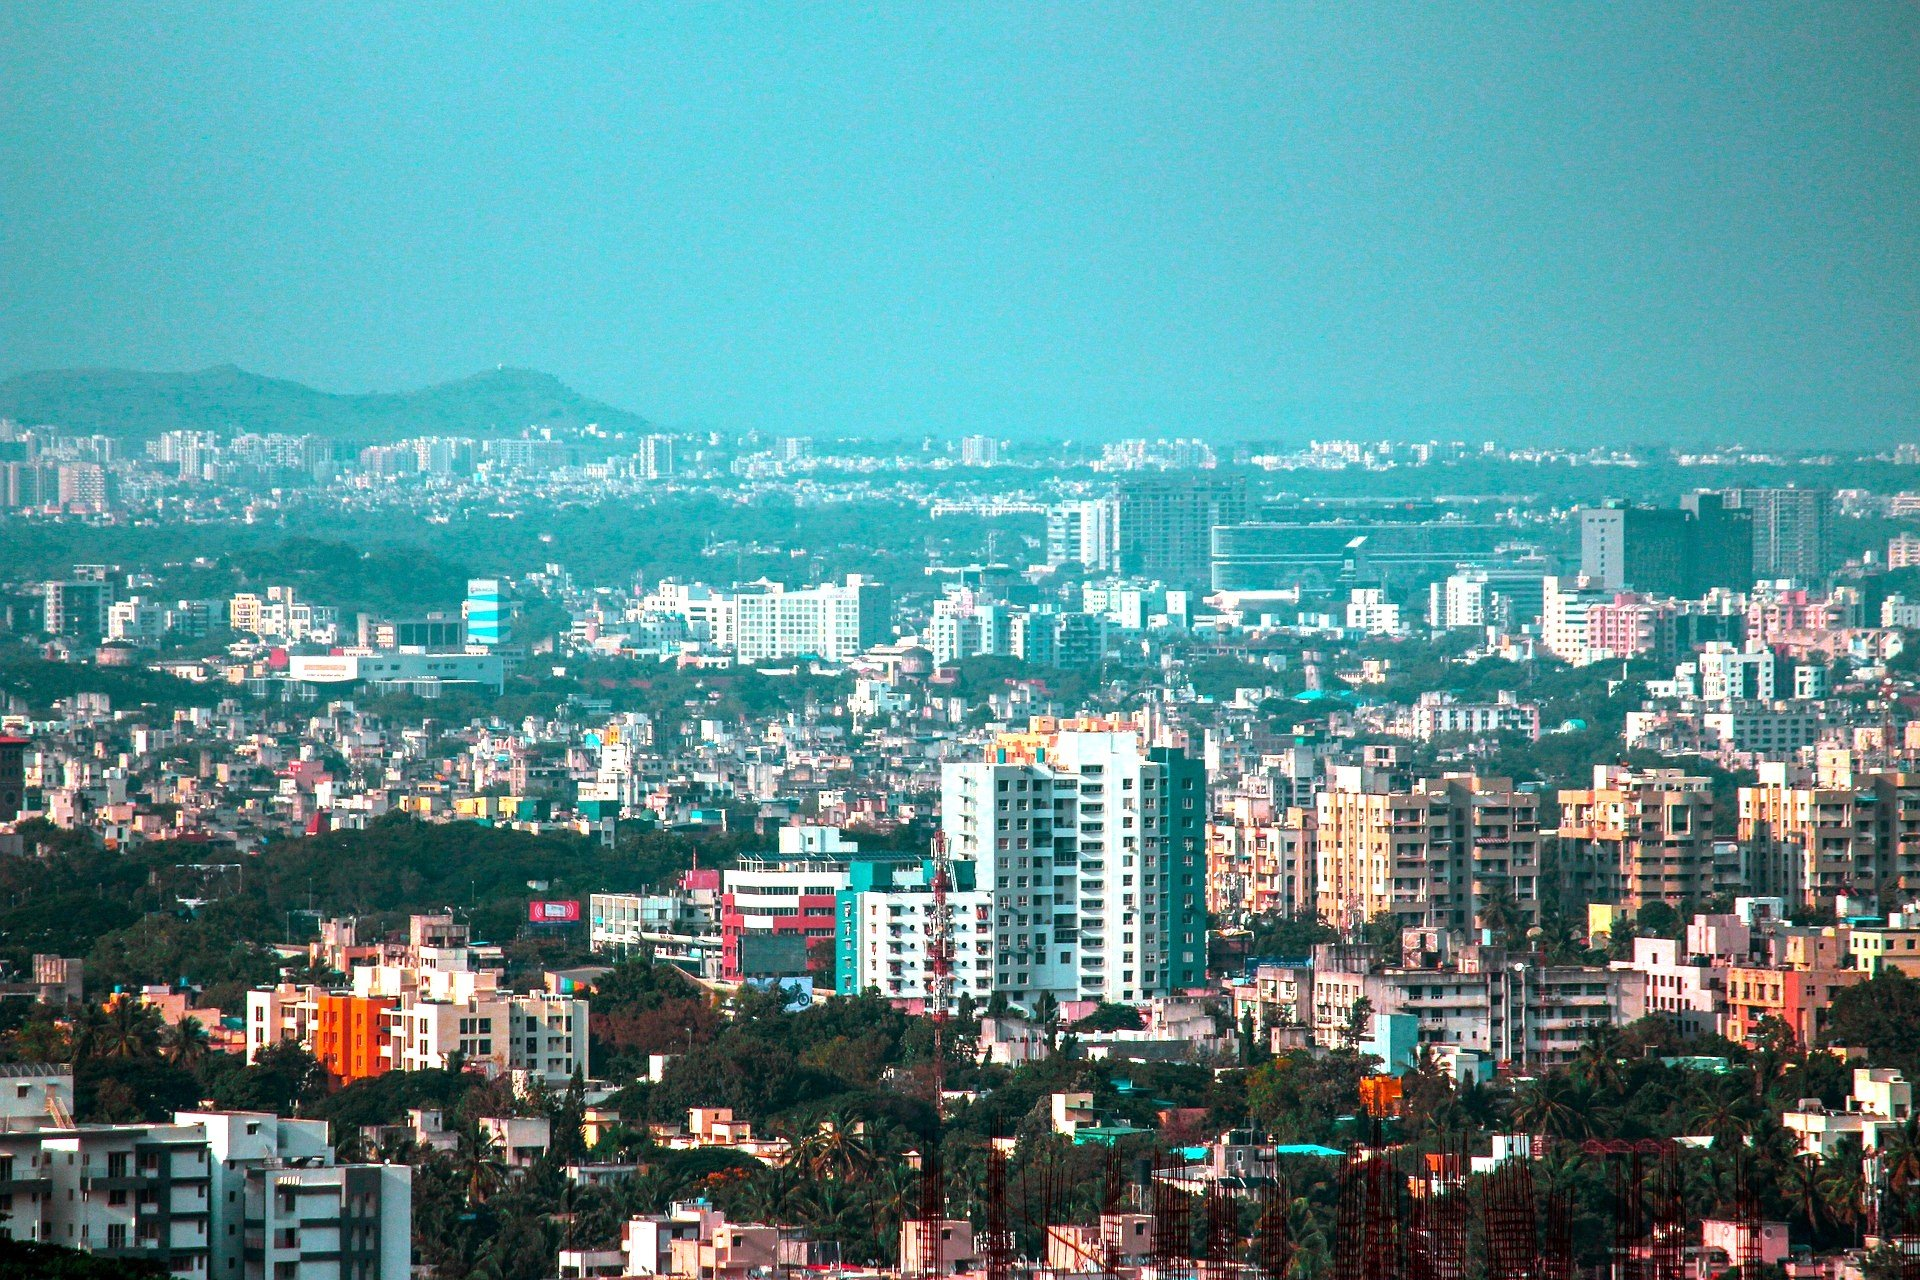 Pune is one of India's biggest cities